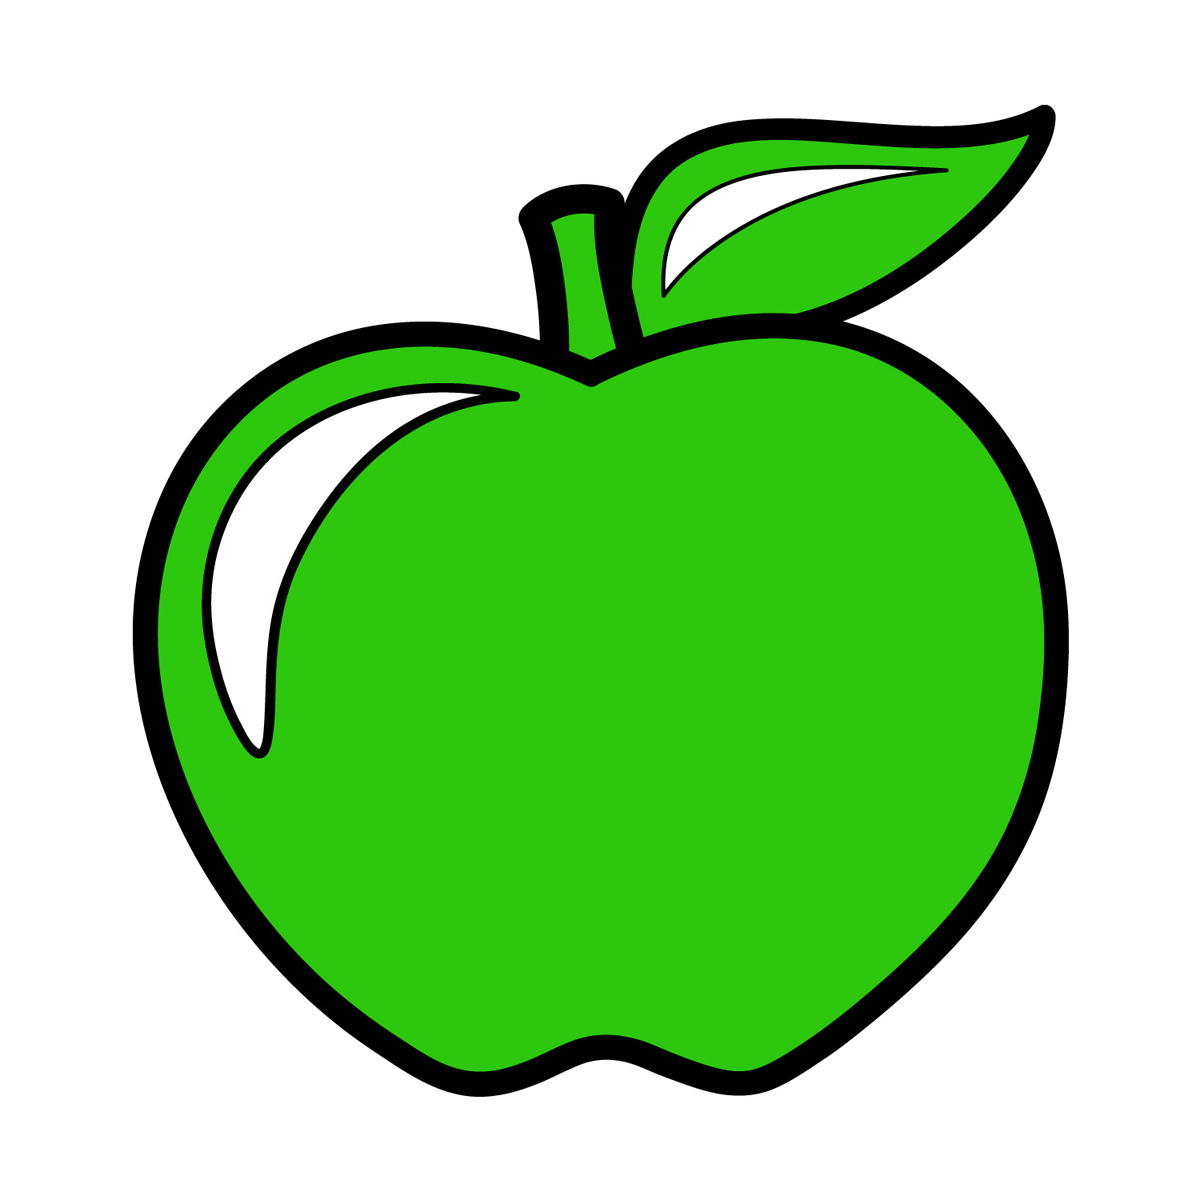 Colouful clipart apple #13